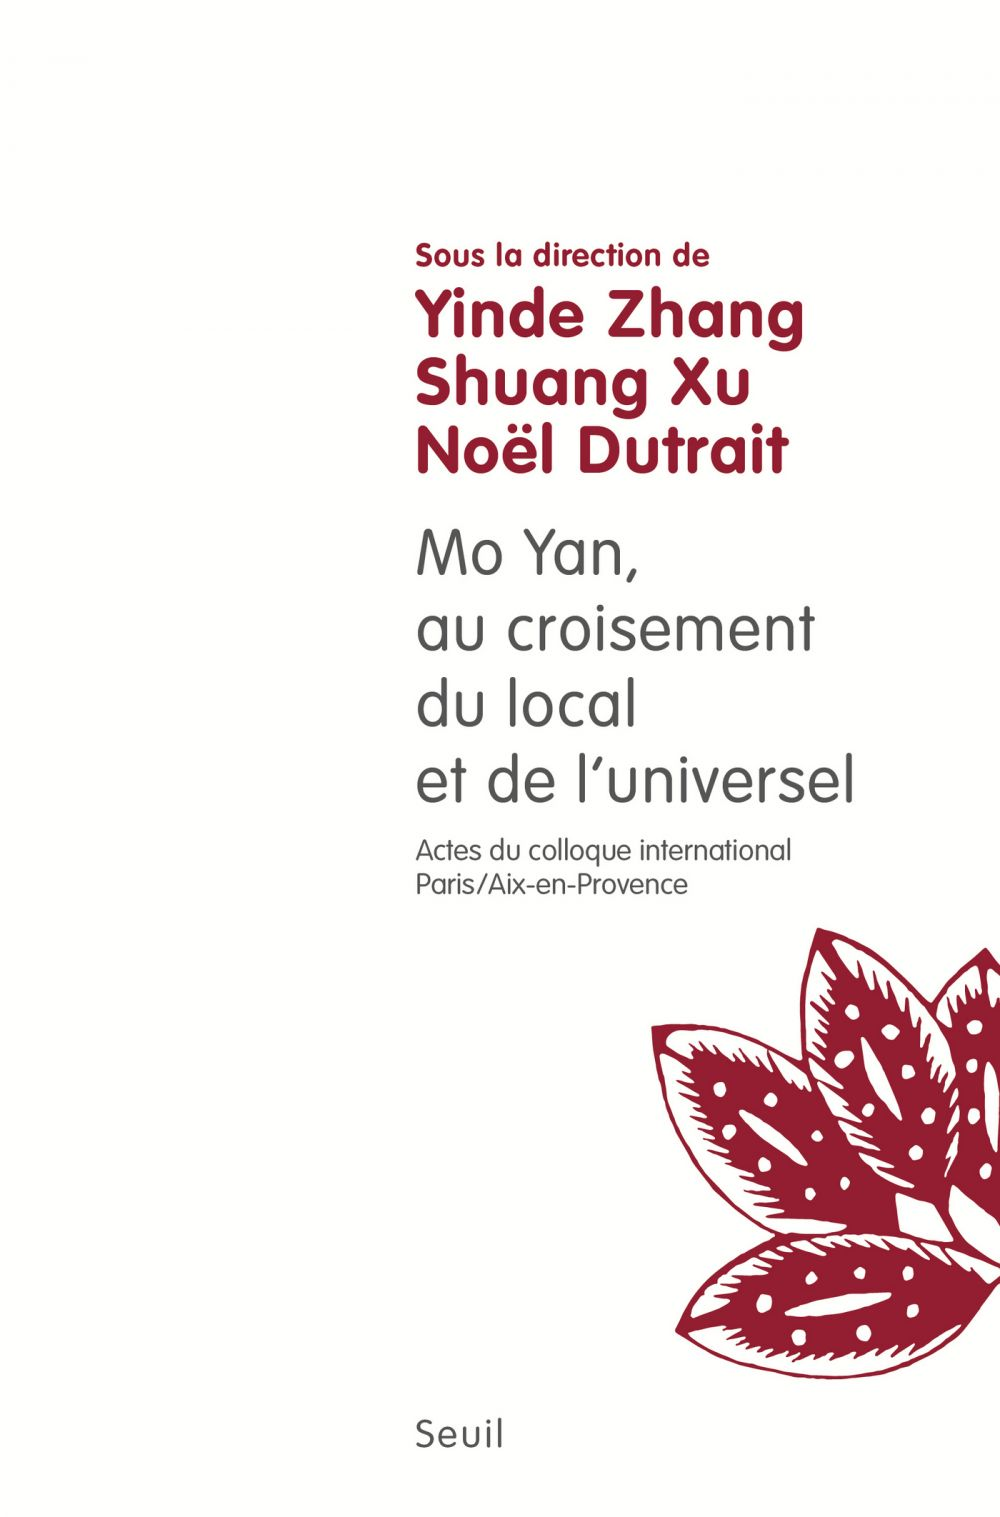 Mo Yan : au croisement du local et de l'universel. (Actes du colloque international Paris-Aix, 2013-